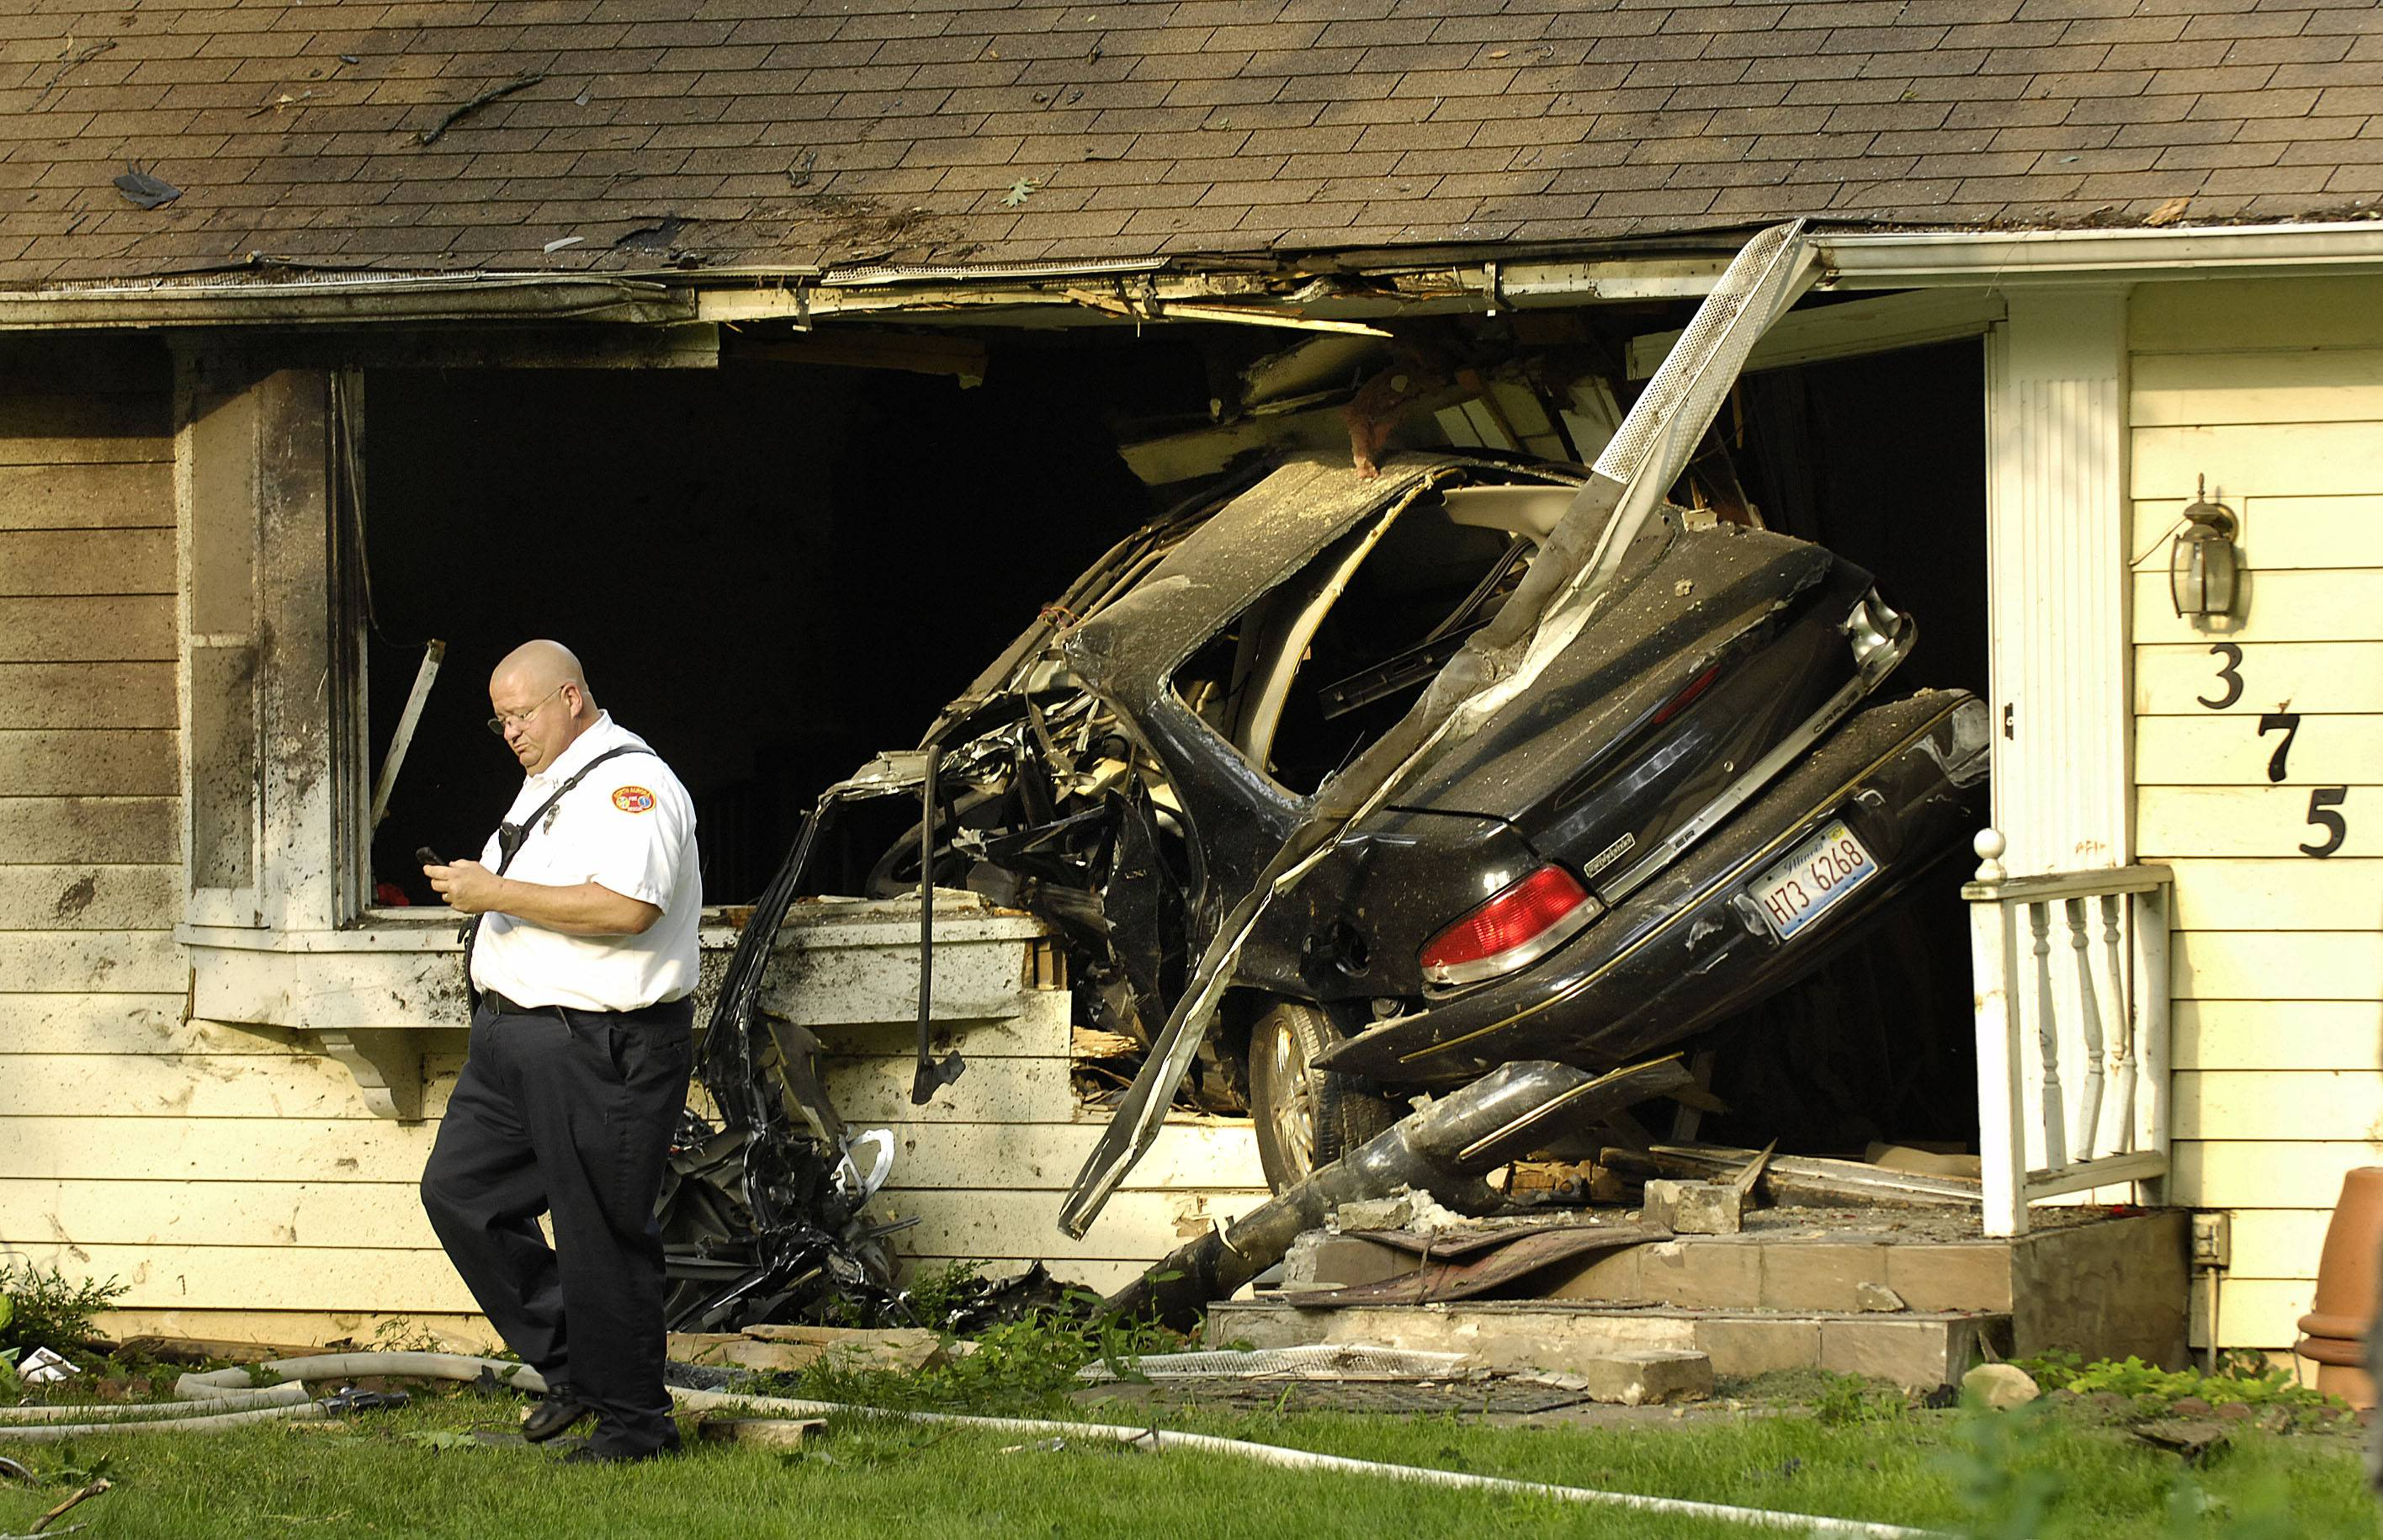 Federal prosecutors have charged two people in connection with selling drugs to 19-year-old Max Dobner, who crashed his car into a North Aurora house in 2011 after smoking synthetic marijuana.